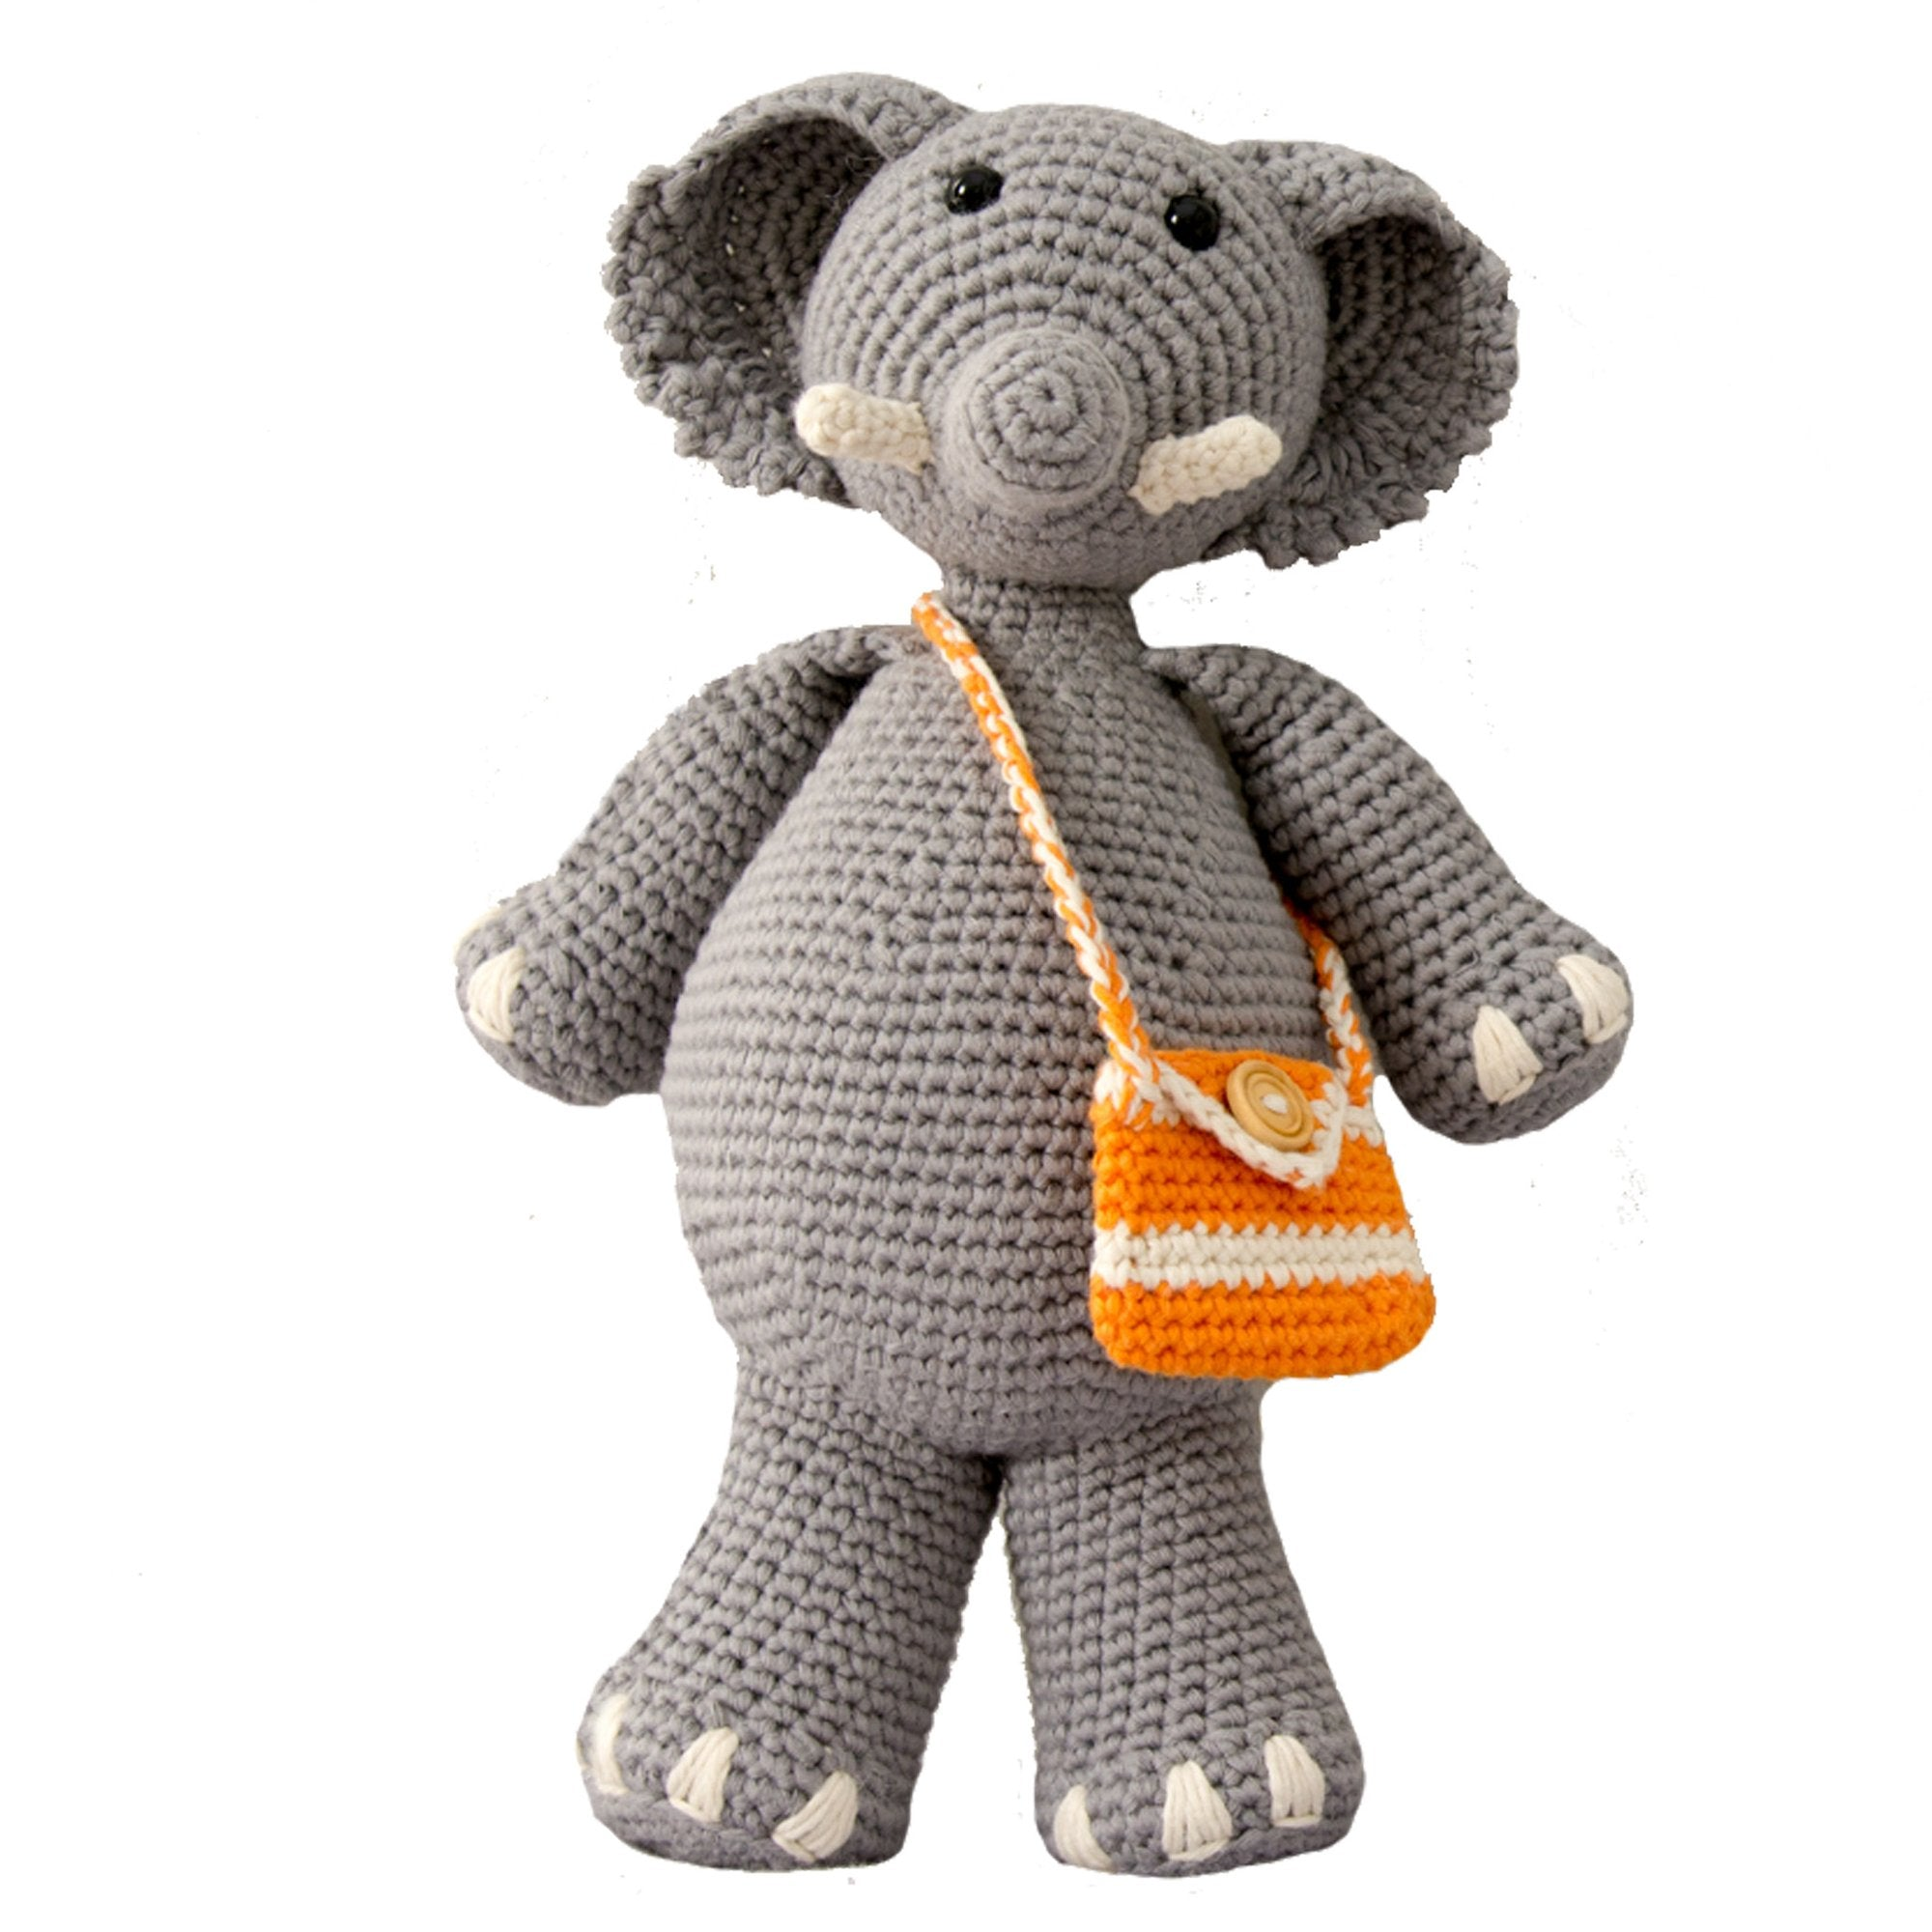 knitted grey elephant toy with orange and white striped satchel. displayed on white backdrop